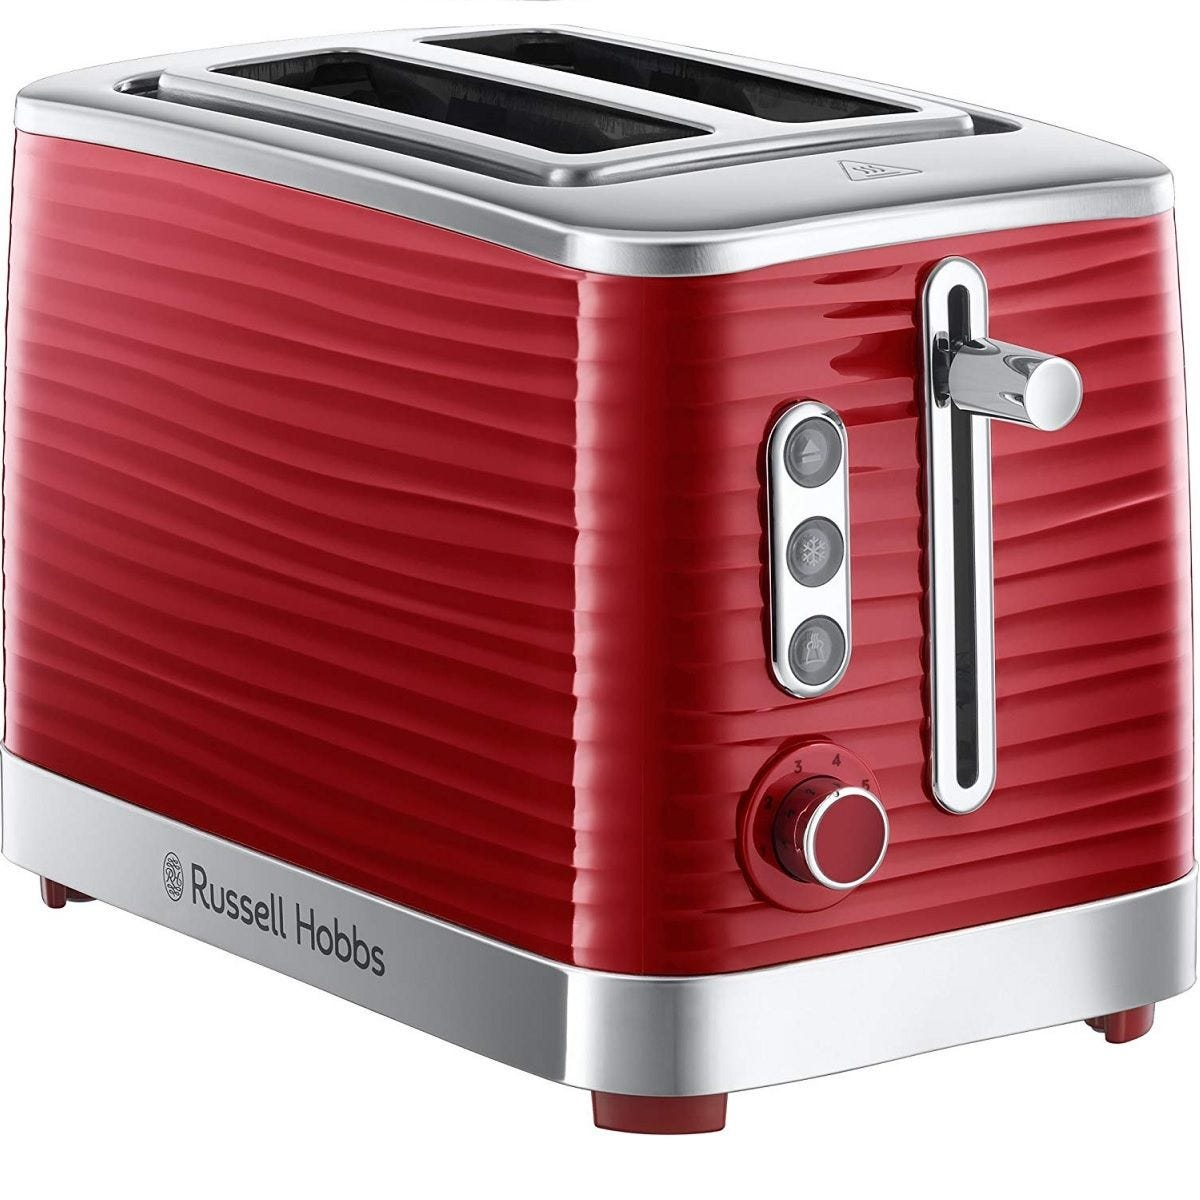 Russell Hobbs 24372 Inspire Toaster 2 Slice - Red